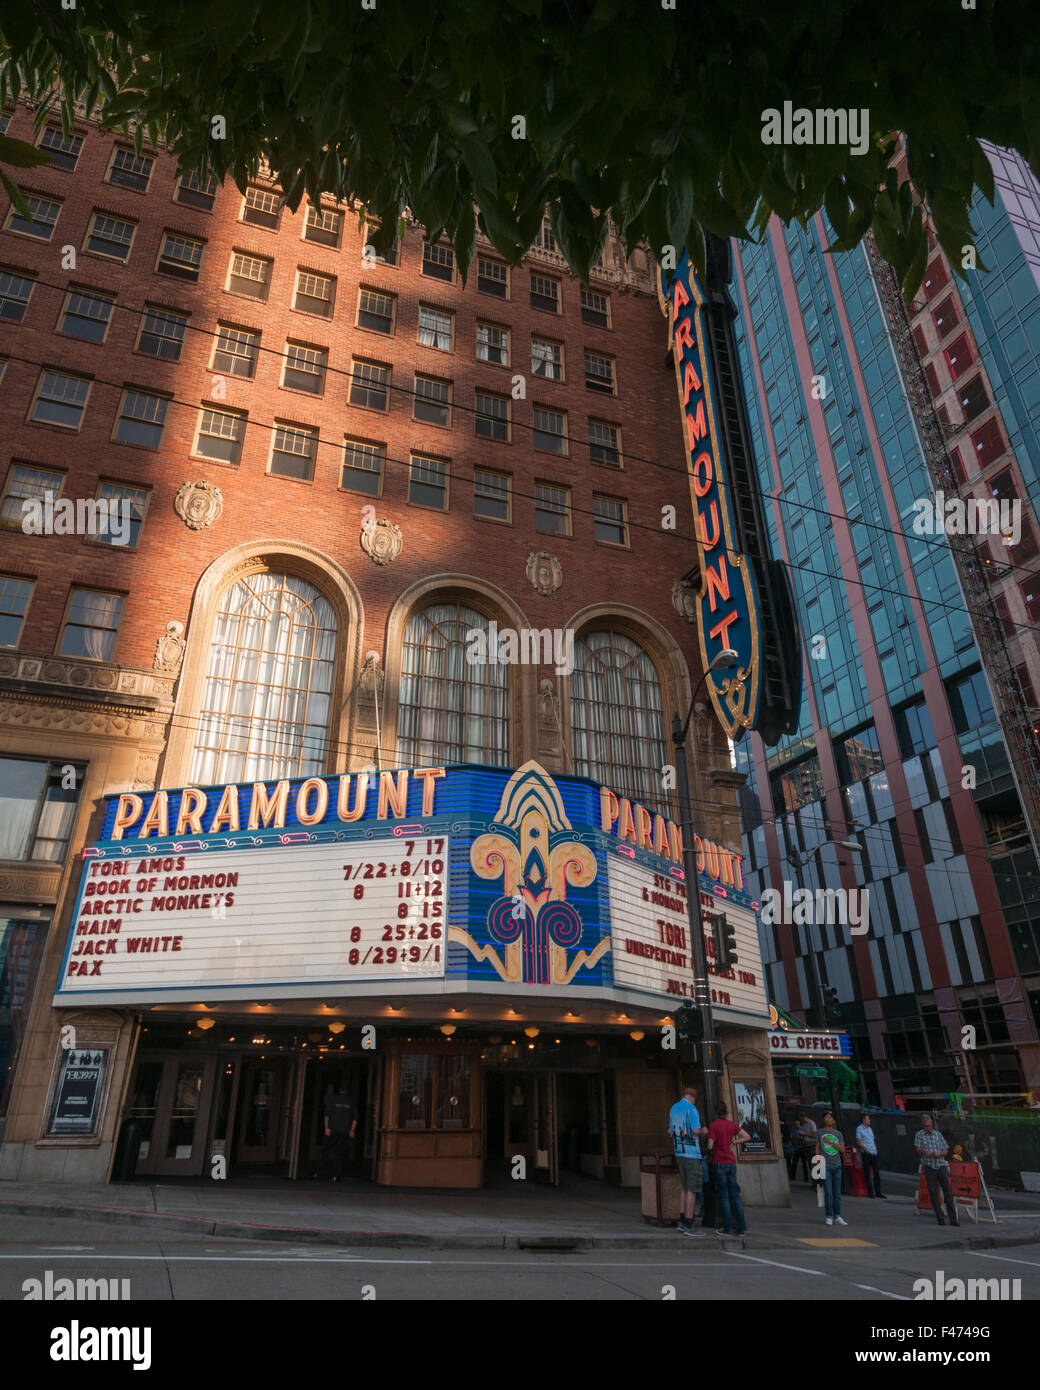 Paramount Movie Theatre on the corner of Pine Street and 9th Avenue - Stock Image